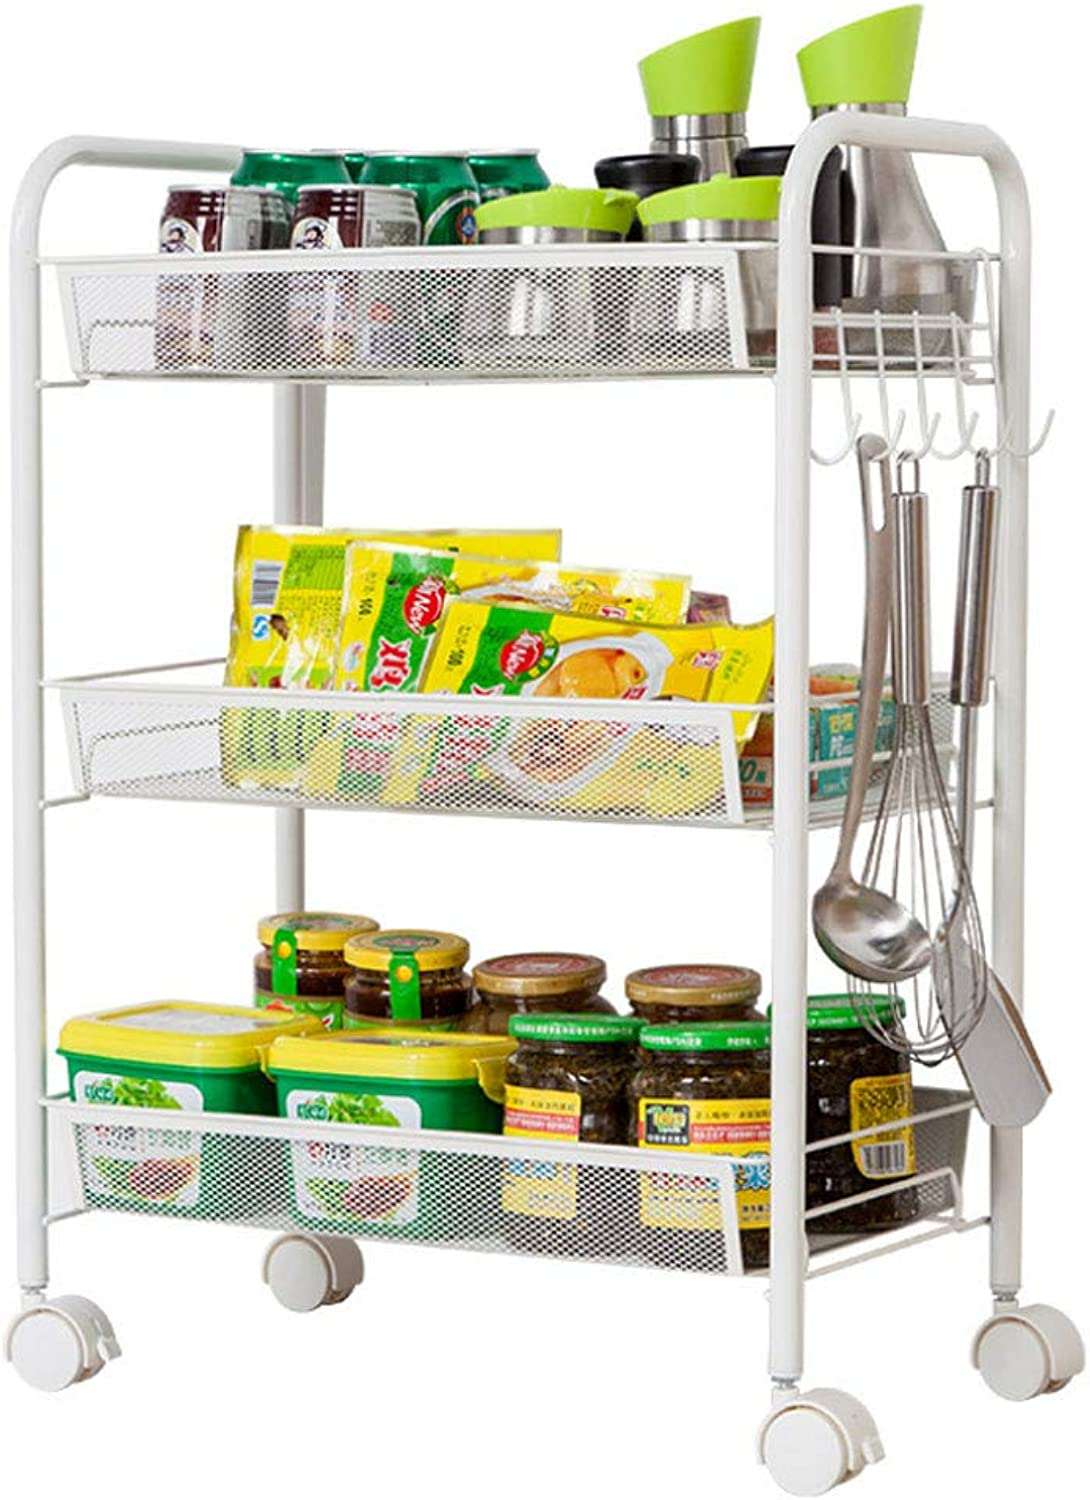 Kitchen Rack Floor Multi-Level Bedroom Removable with Pulley Storage Shelf Bathroom Small Trolley Vegetable Rack Multifunction (Size   45  27  63cm)